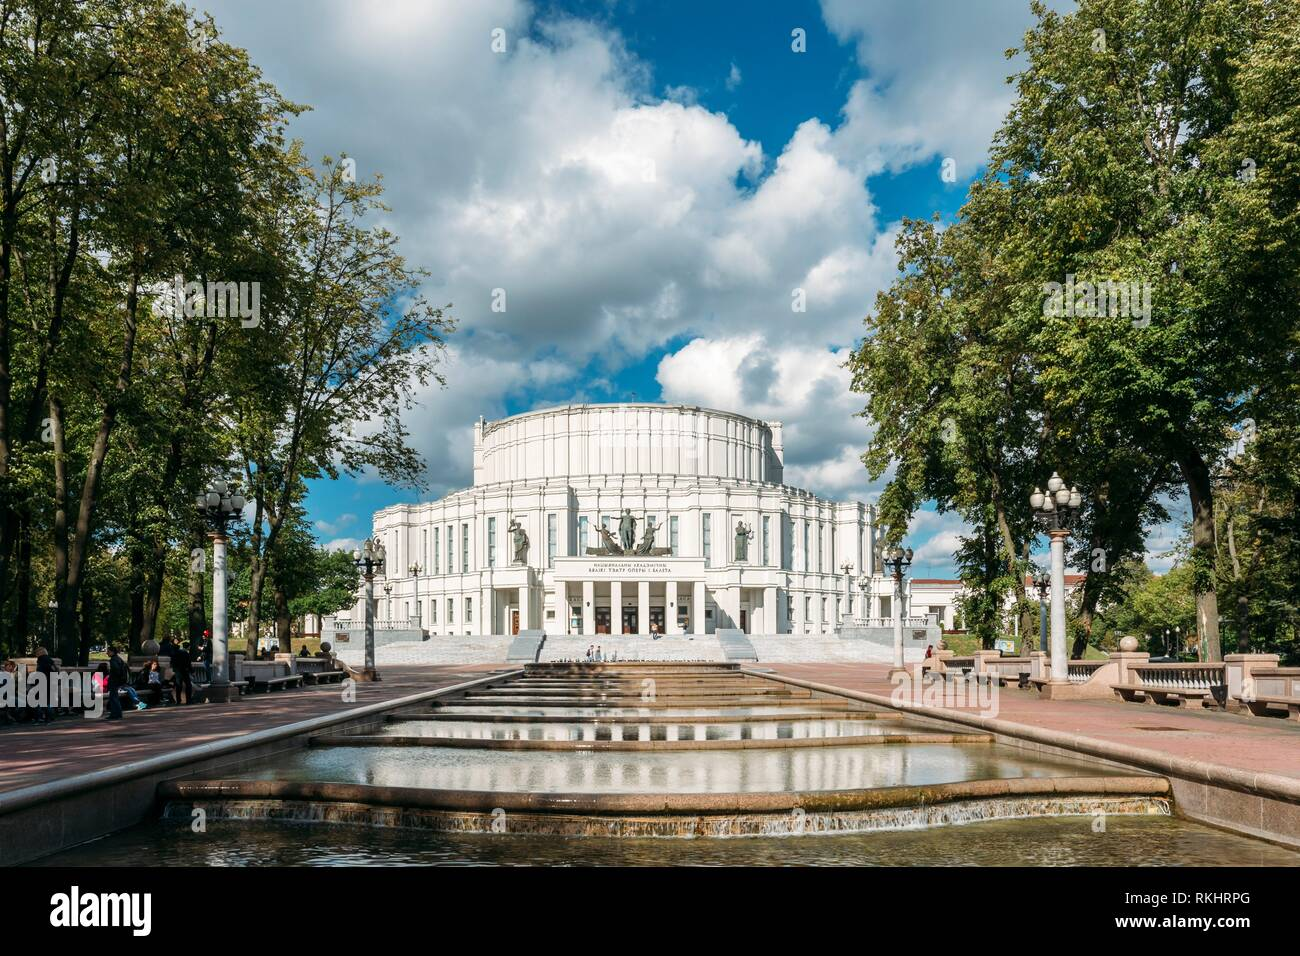 The National Academic Bolshoi Opera and Ballet Theatre of the Republic of Belarus In Minsk. - Stock Image